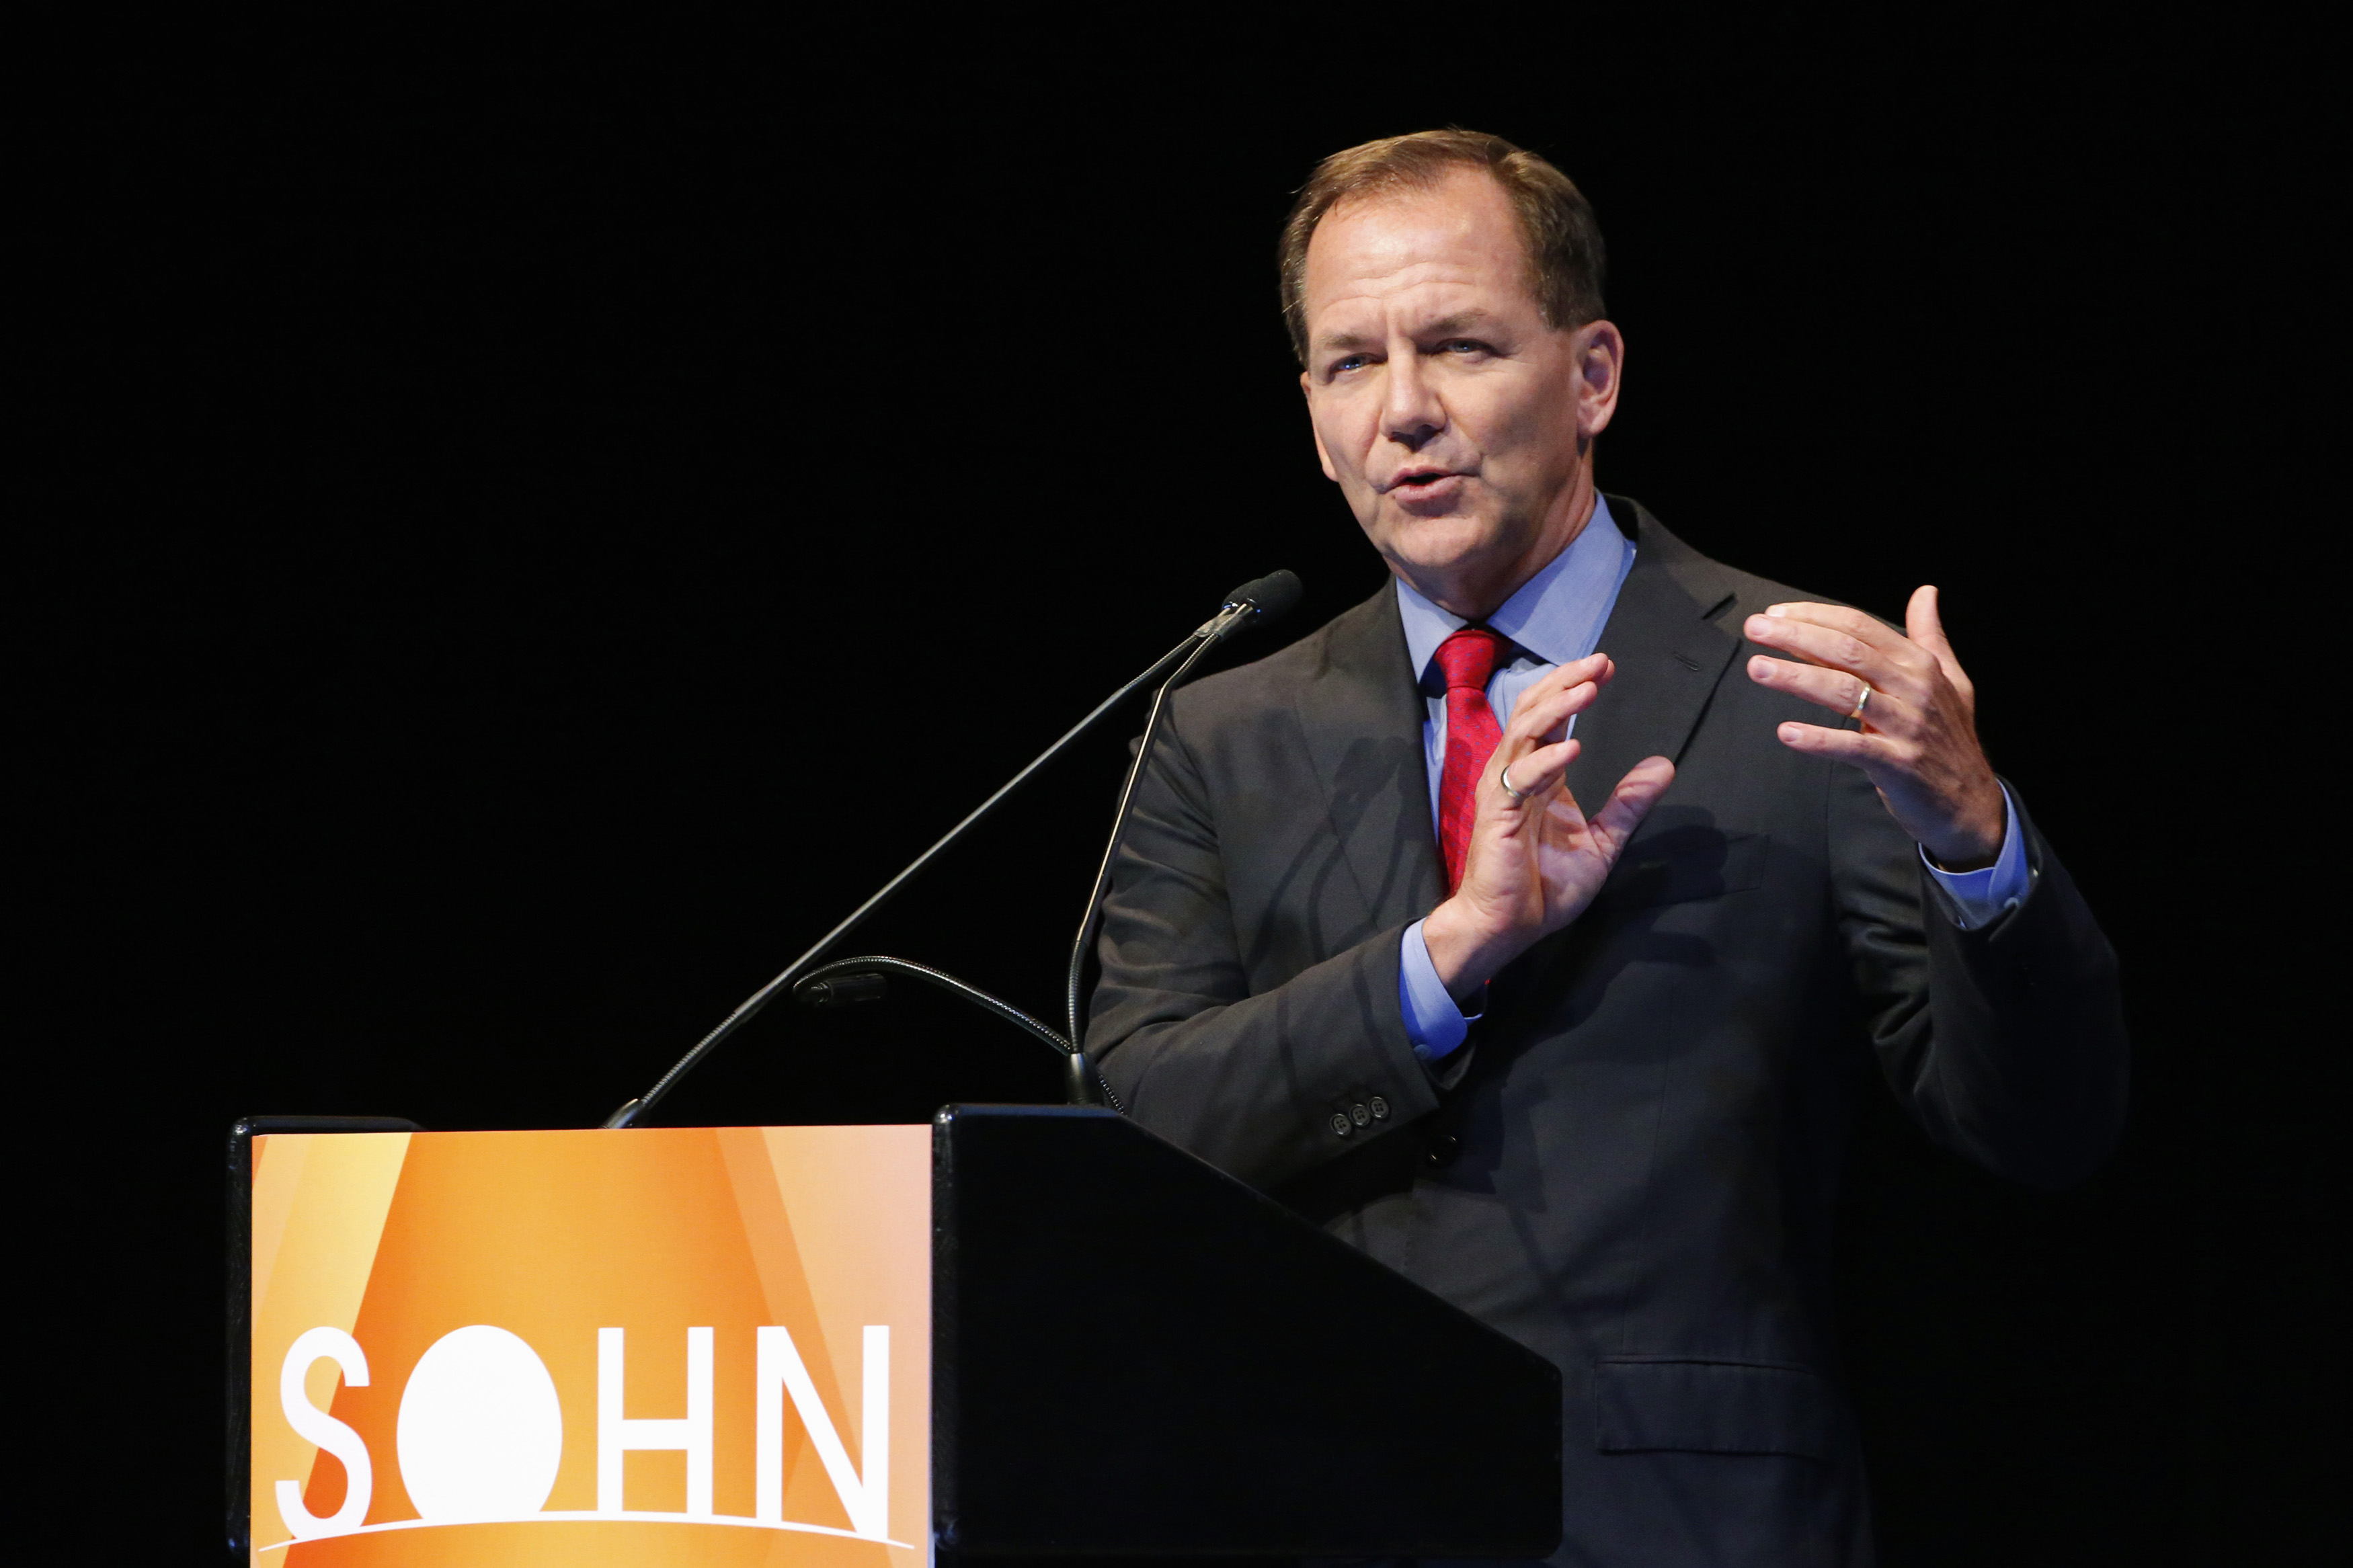 Paul Tudor Jones, founder and chief investment officer of Tudor Investment Corporation, speaks at the Sohn Investment Conference in New York, May 5, 2014. Jones on Monday recommended selling British government bonds later in the summer. Jones, speaking at the Sohn Investment Conference in New York, said that gilts, or British government bonds, would probably be a